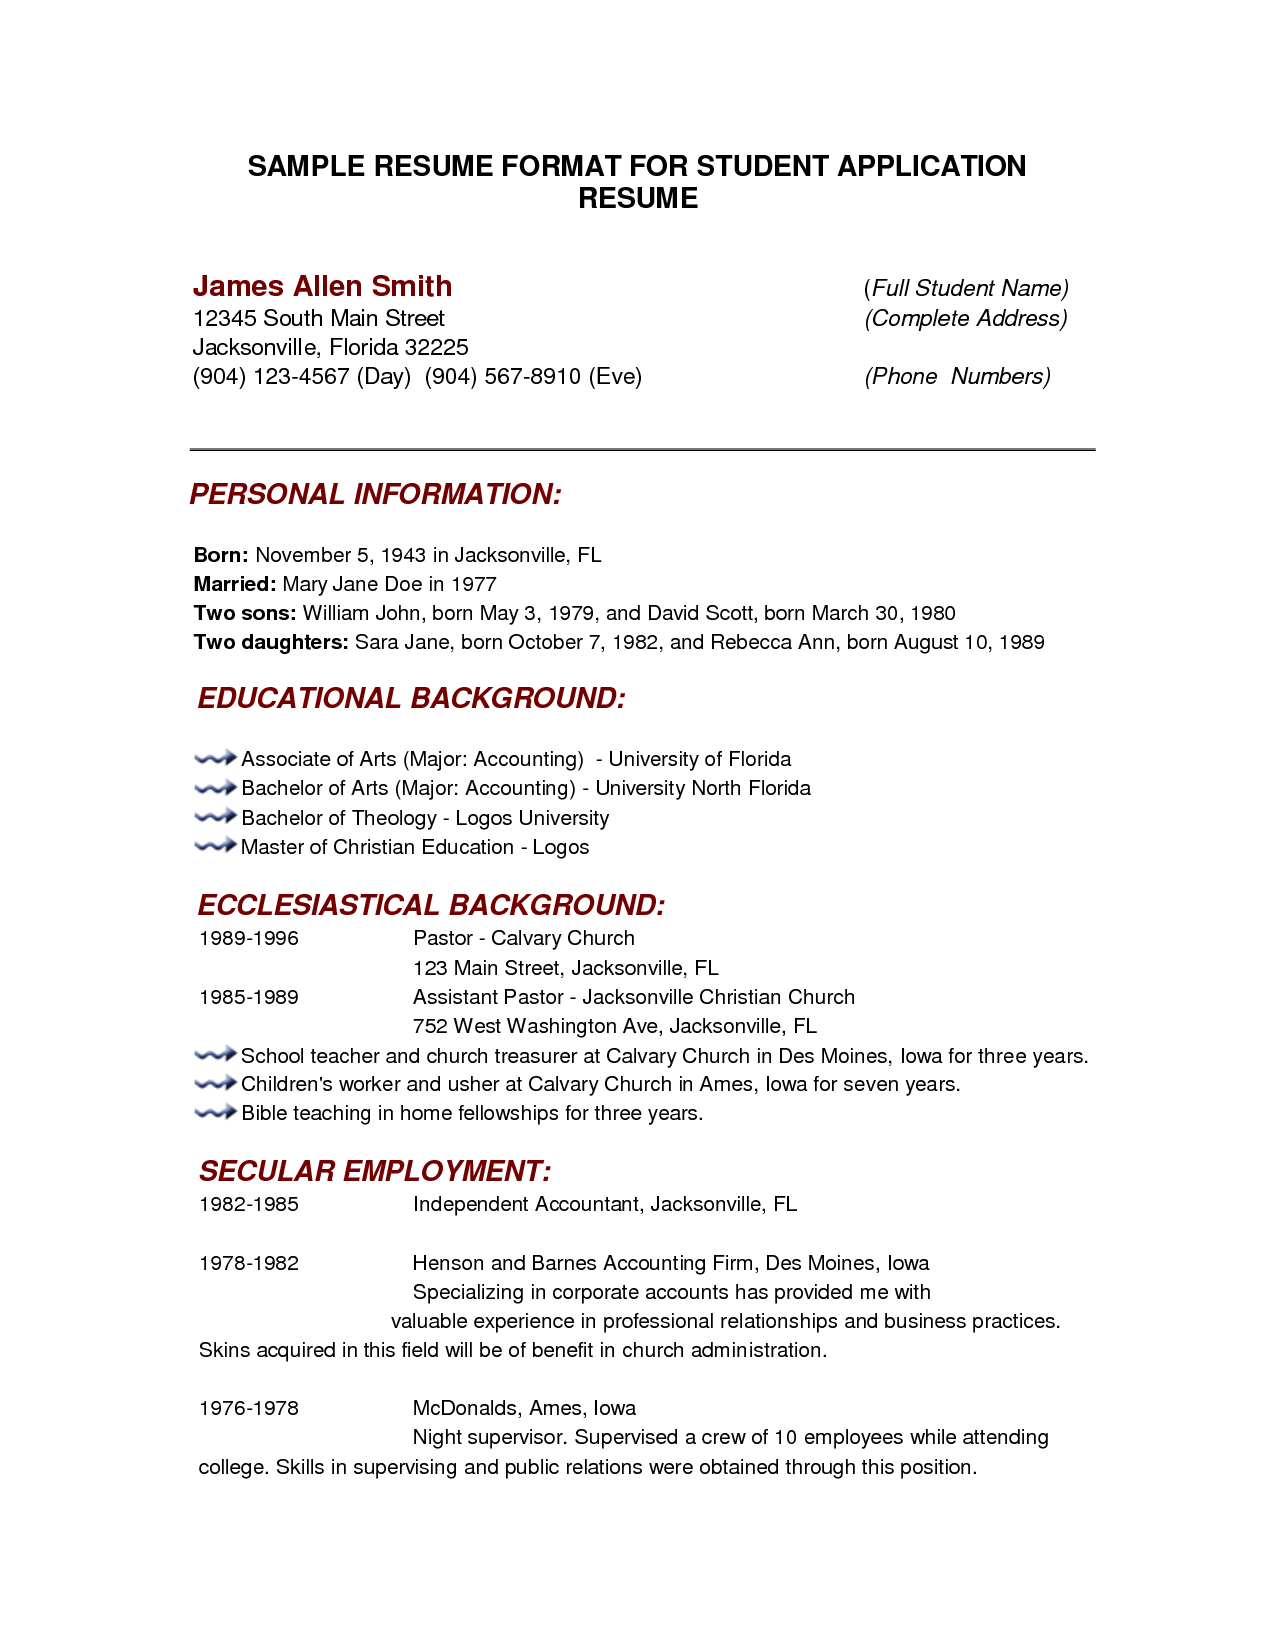 Full Block Resume Format Style For Business Letter Examples Basic Template  Free Samples  Formatting Resume